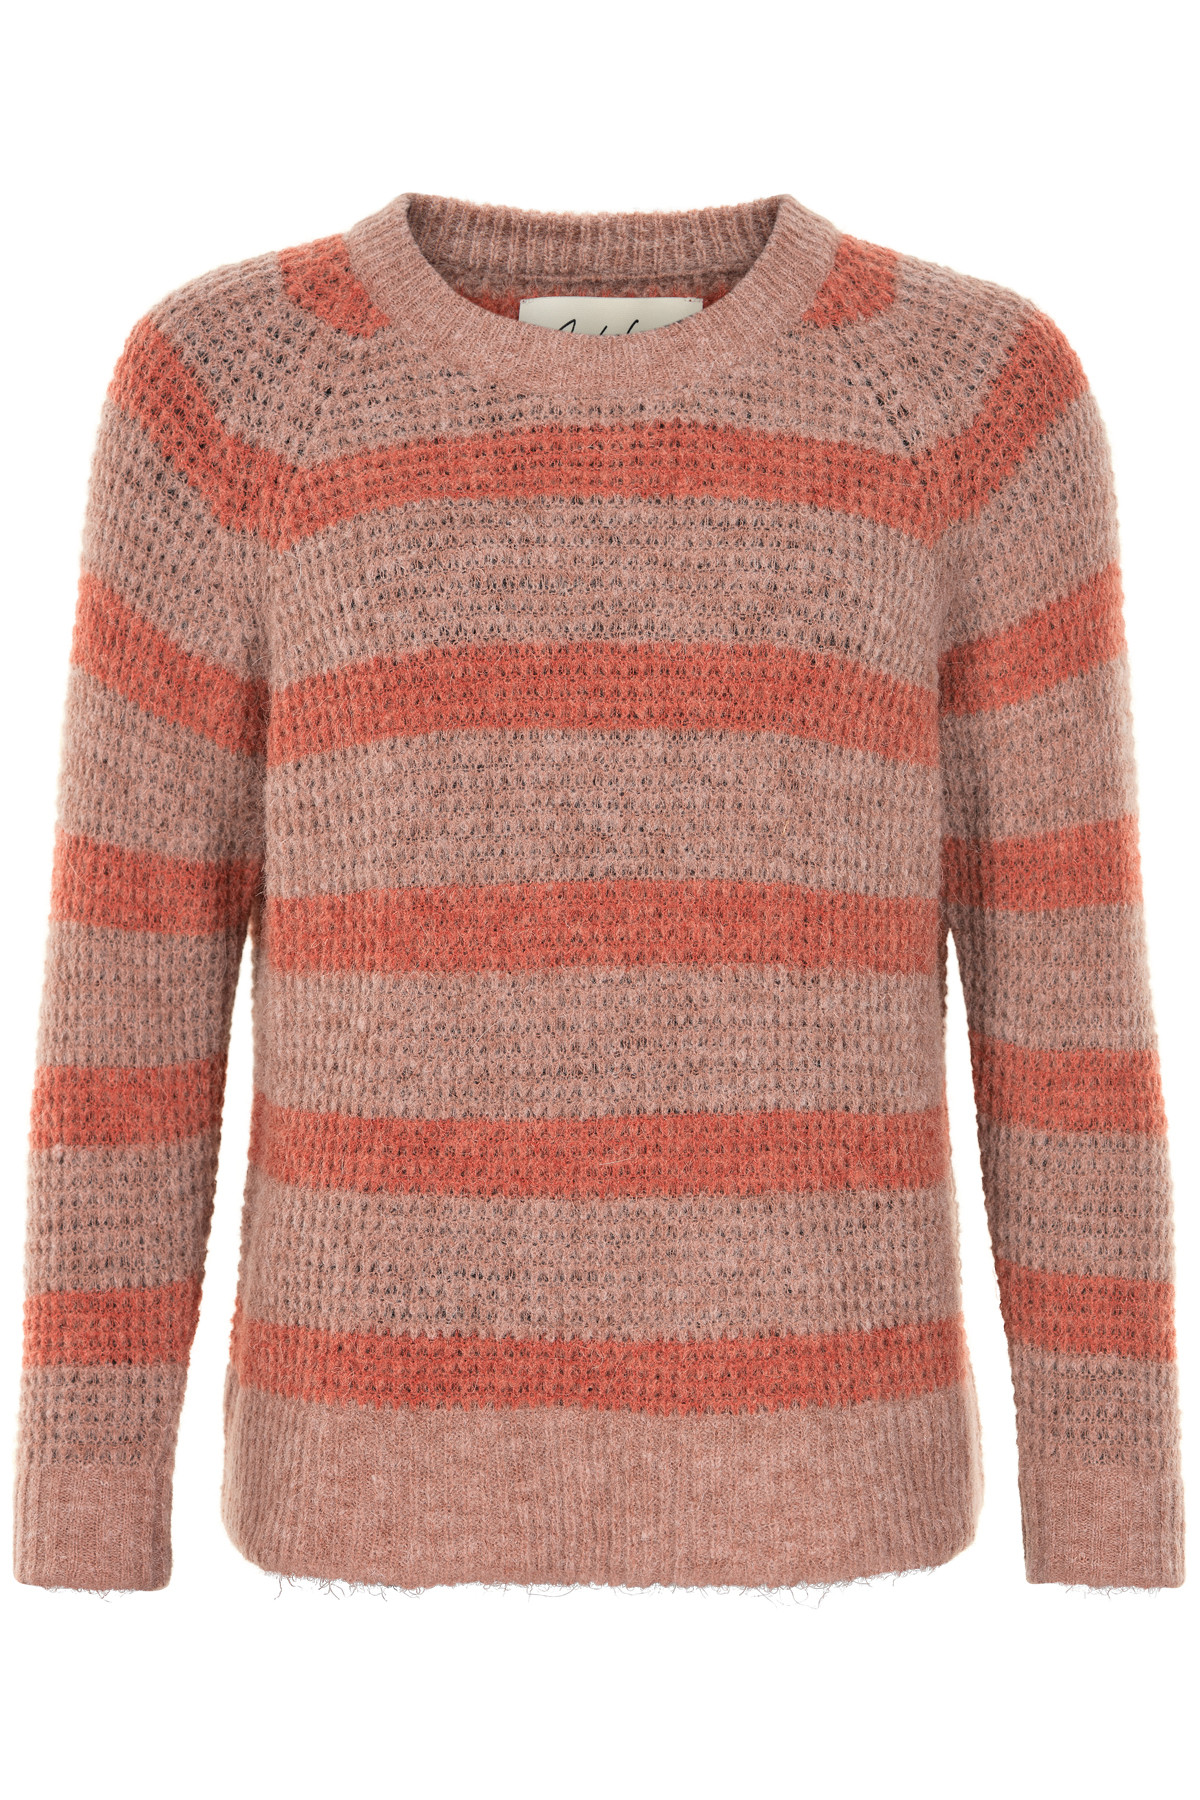 Image of   AND LESS BAMBINA PULLOVER 5419202 (Burlwood, S)